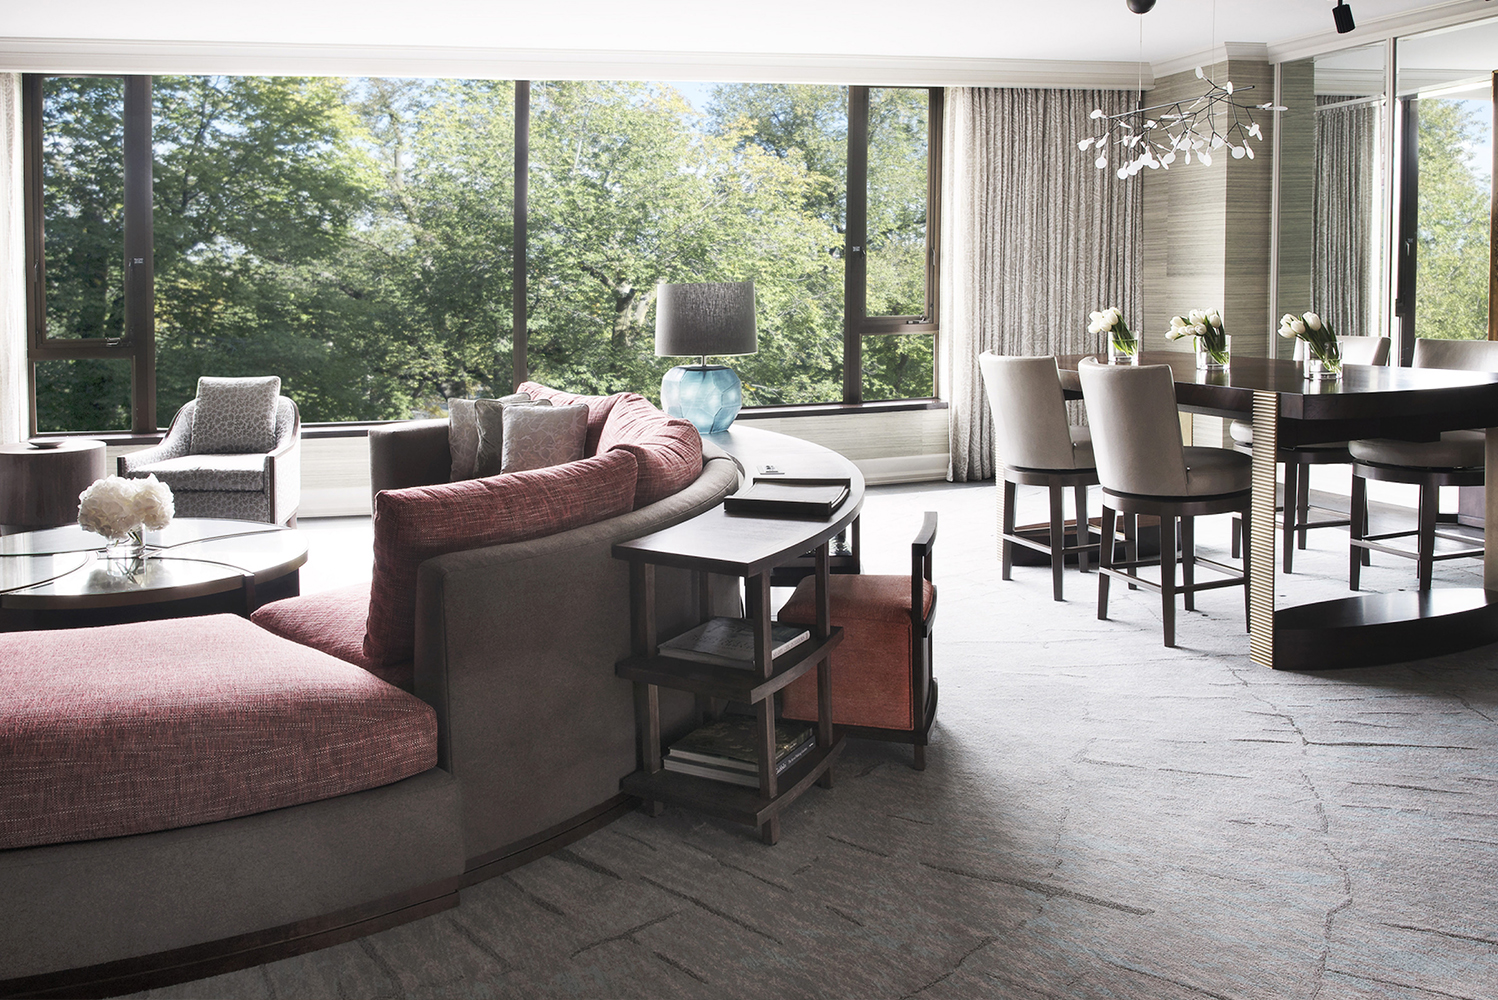 Four Seasons Hotel Boston, a Forbes five-star hotel in New England, renovated its luxury Garden Suite and Presidential Suite.